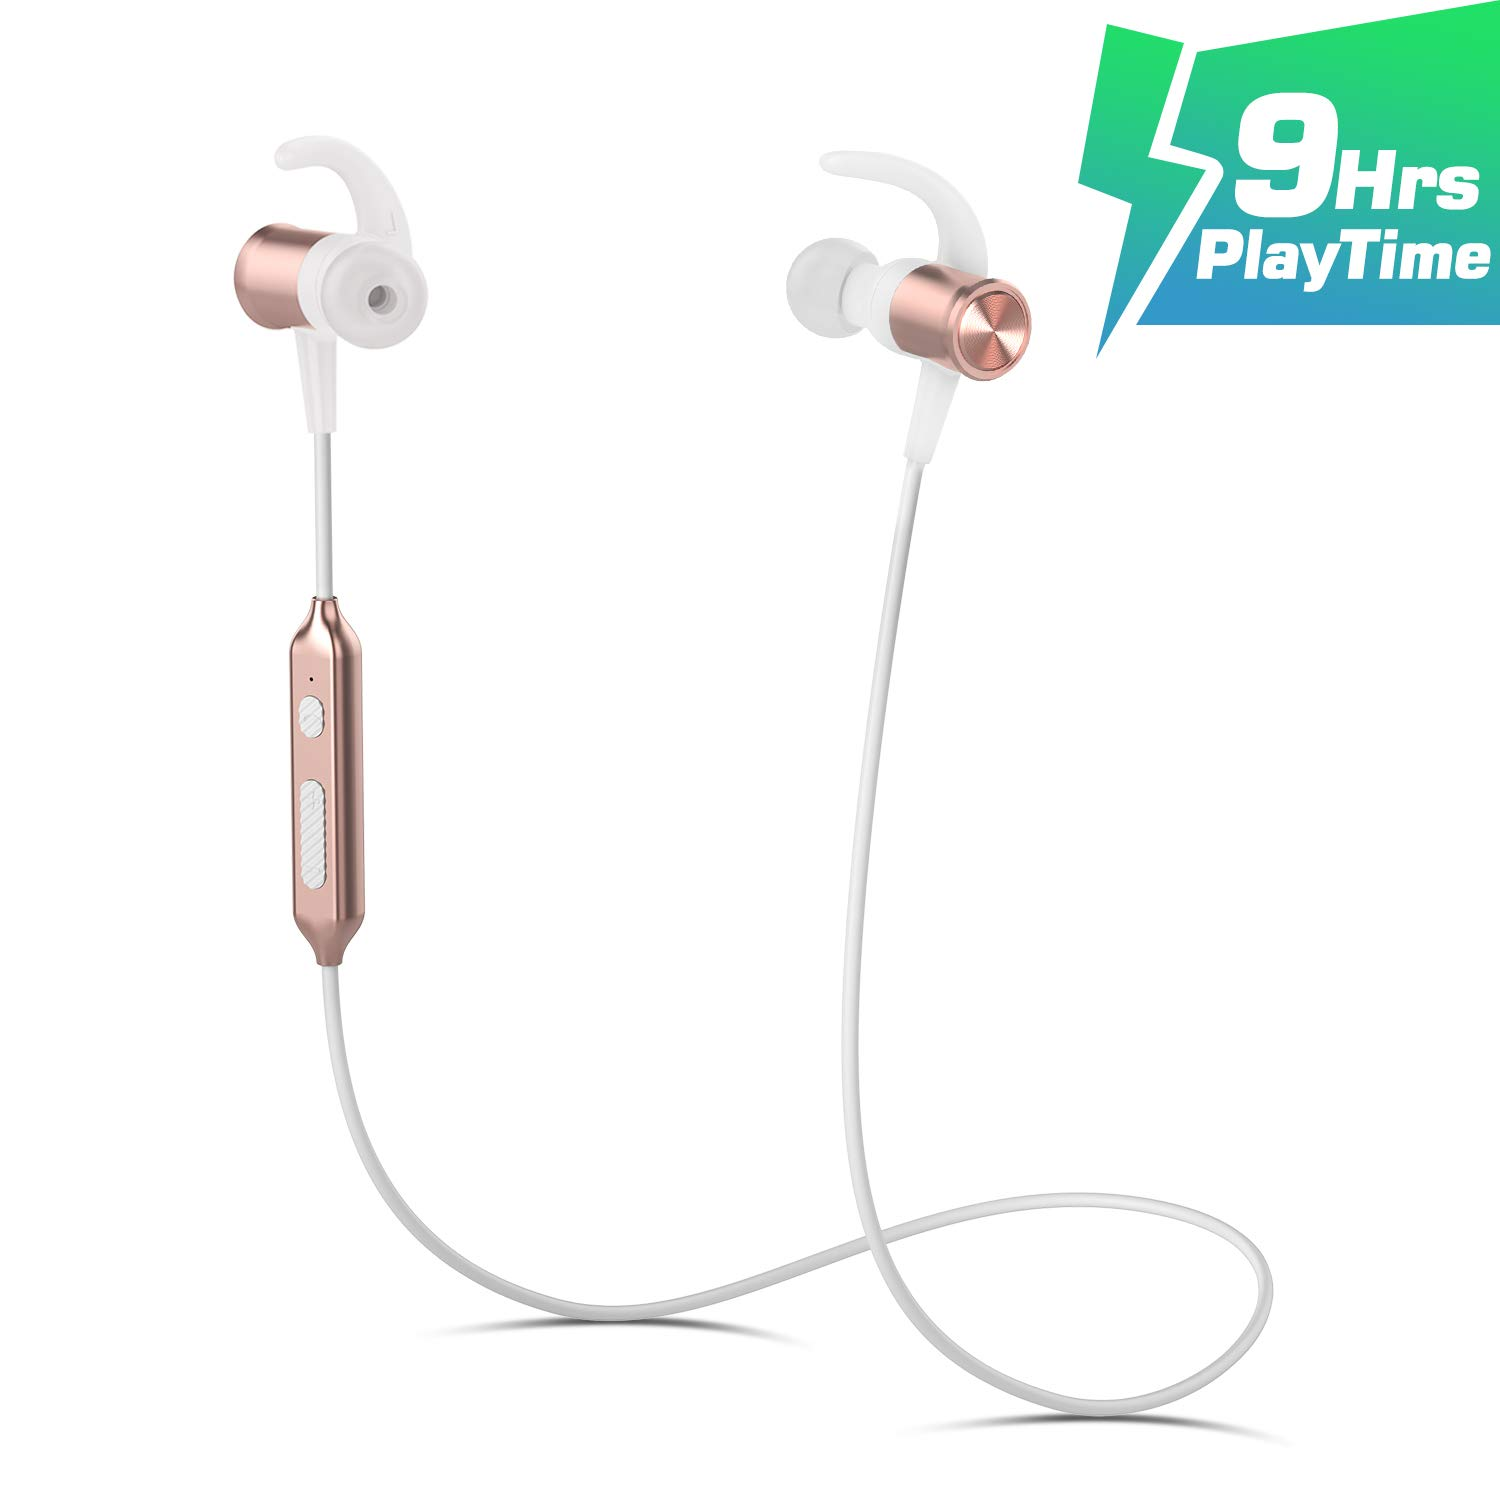 Wireless Sport Running Headphones, Bluetooth 4.1 Lightweight Stereo Earbuds with Magnetic Connection, Best Wireless Sports Stereo Sweatproof Headset with Built-in Mic for iPhone 7 7 Plus Gold